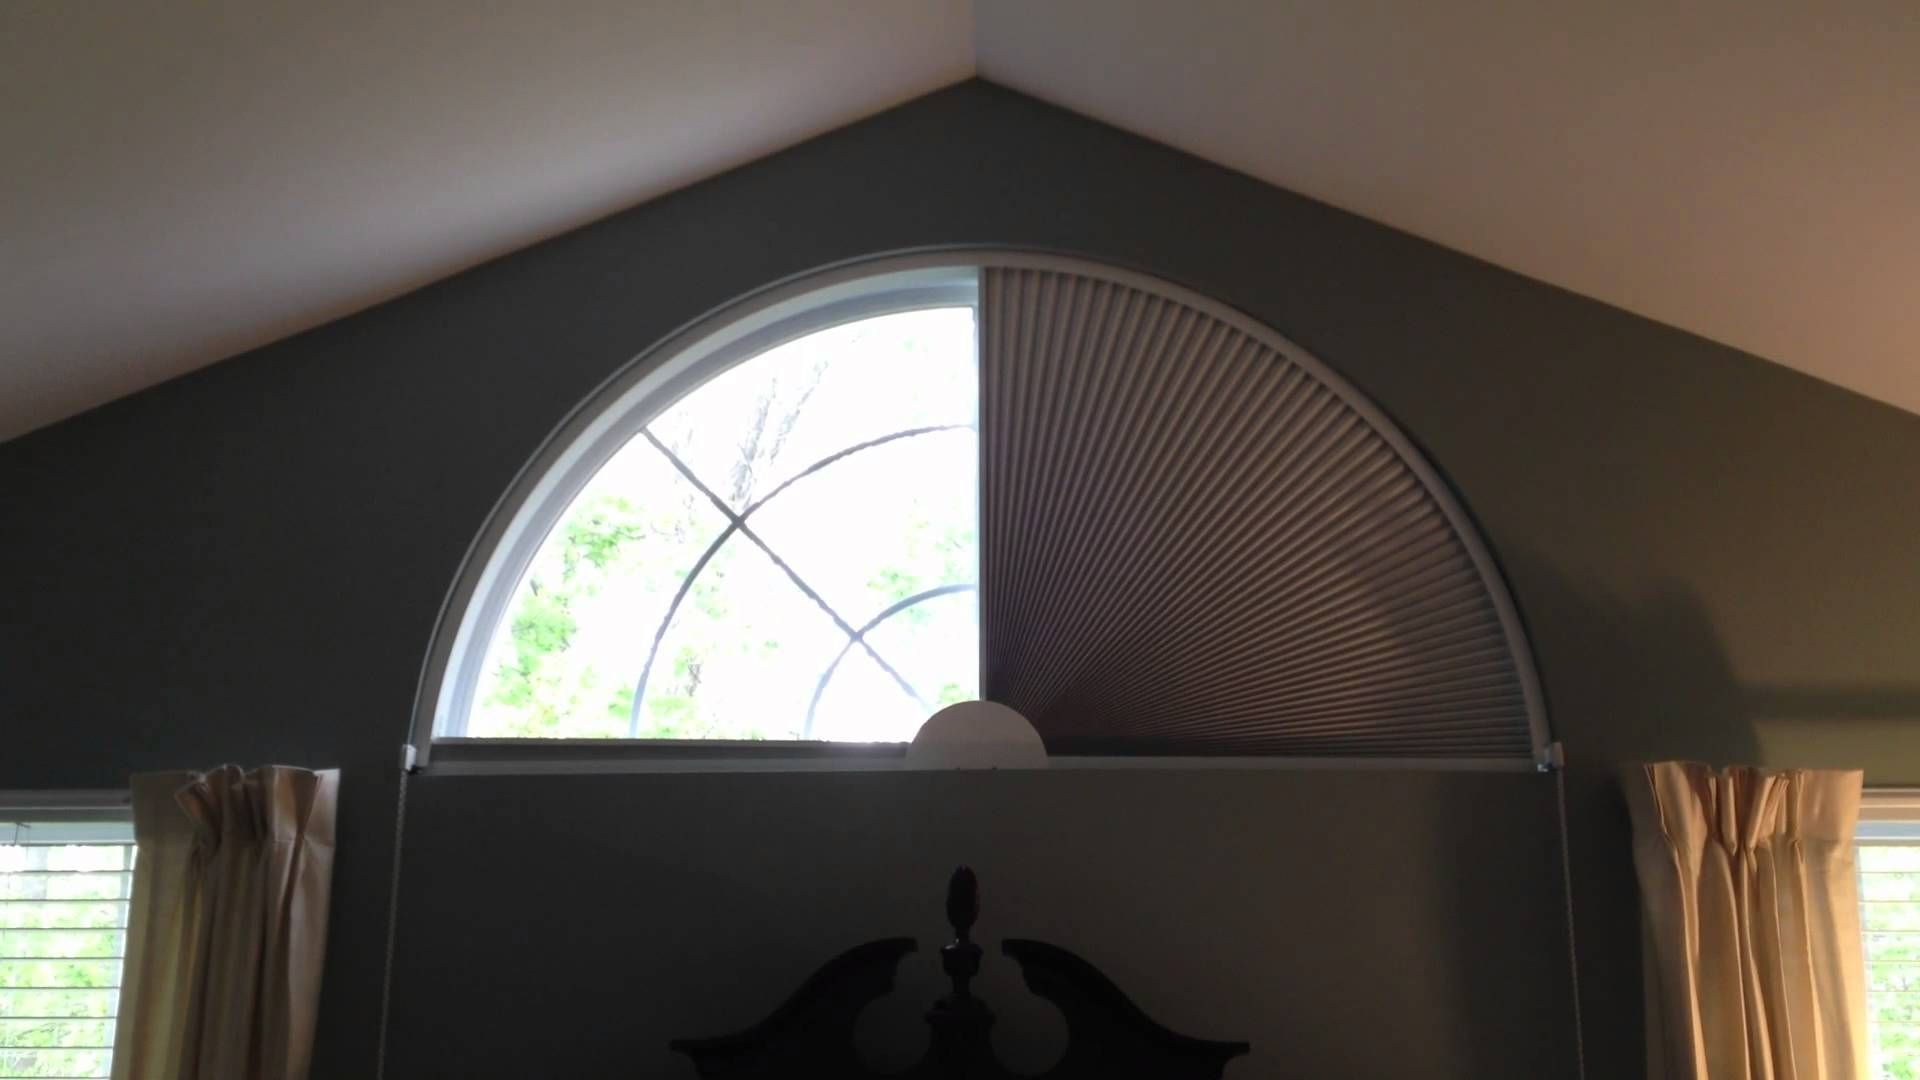 half moon blinds semi circle elegant half circle window shades pertaining to size 1024 768 custom blinds for moon windows when considering windo